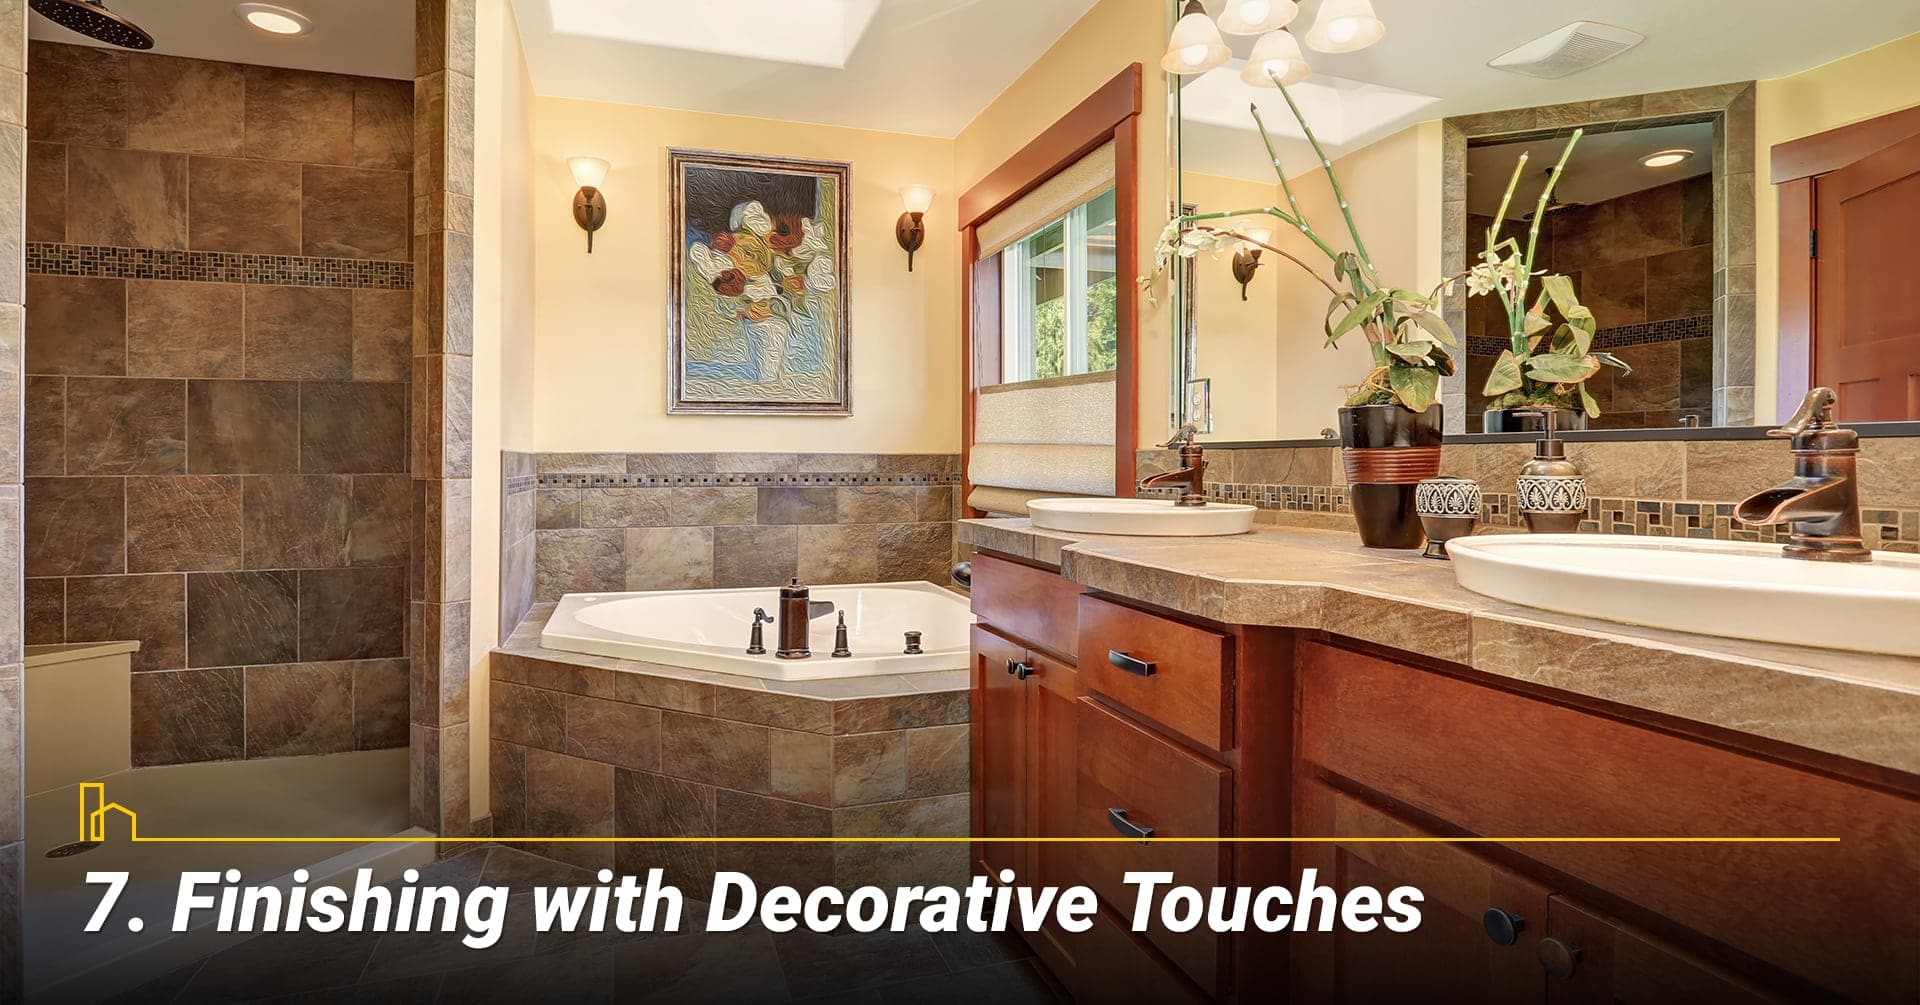 Finishing with Decorative Touches, add decorative items